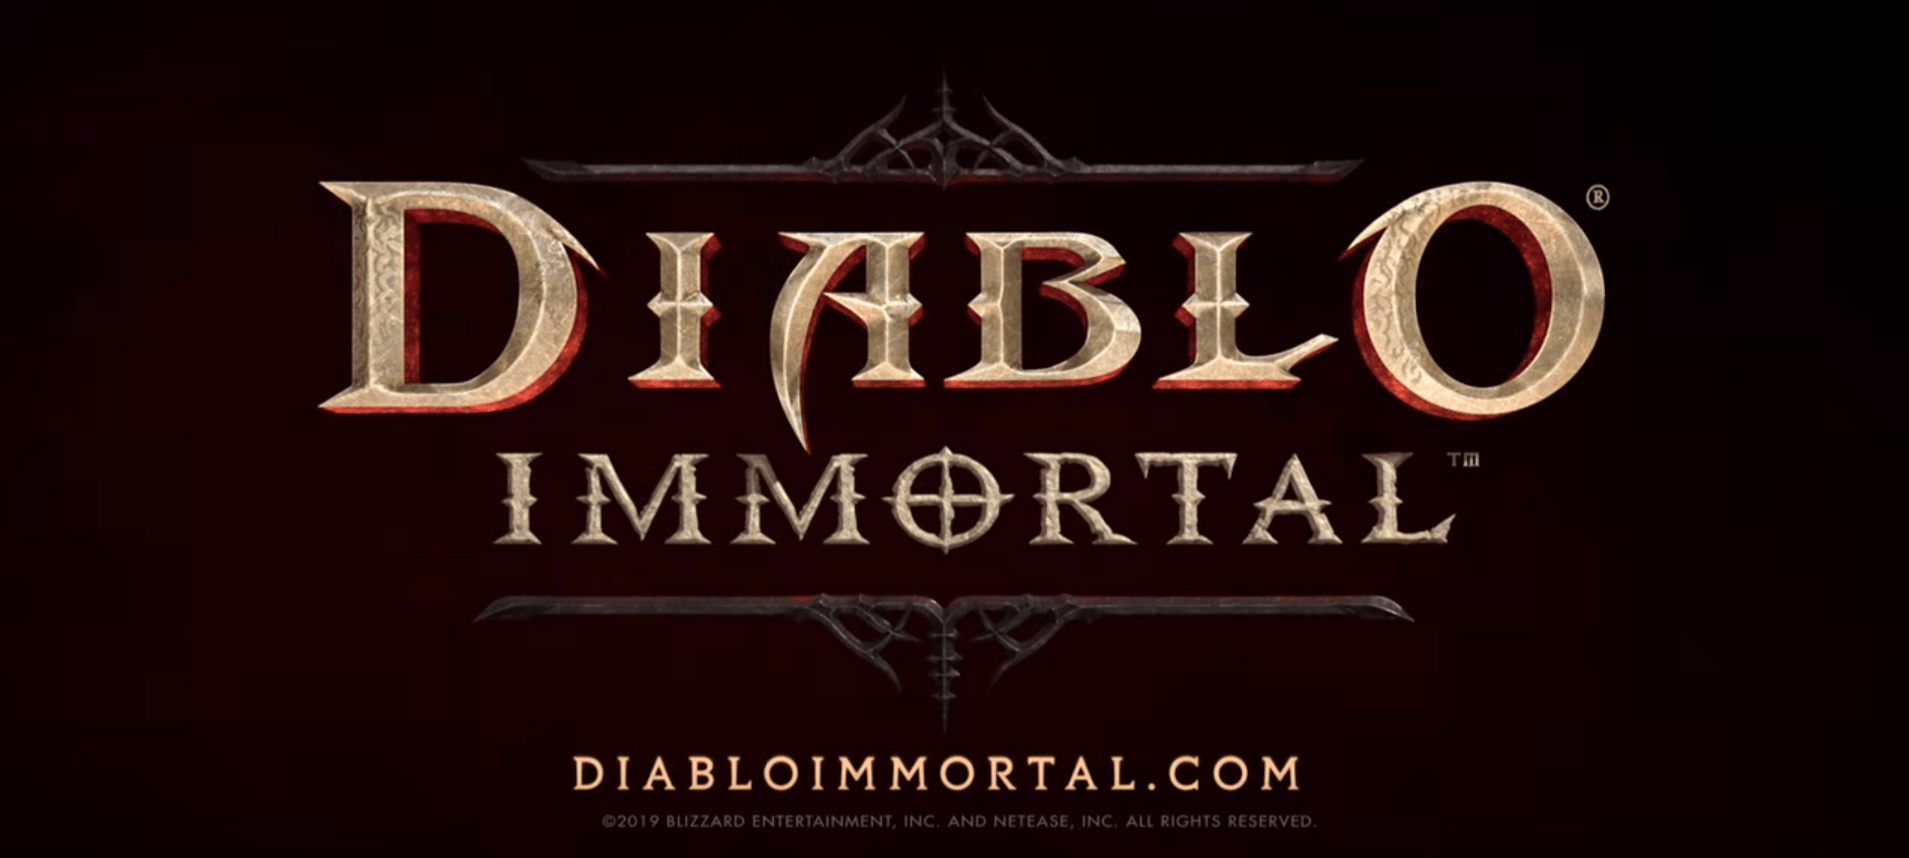 Diablo Immortal. What Gamers Need To Know: Game Play and Story. New Development Trailer Released.